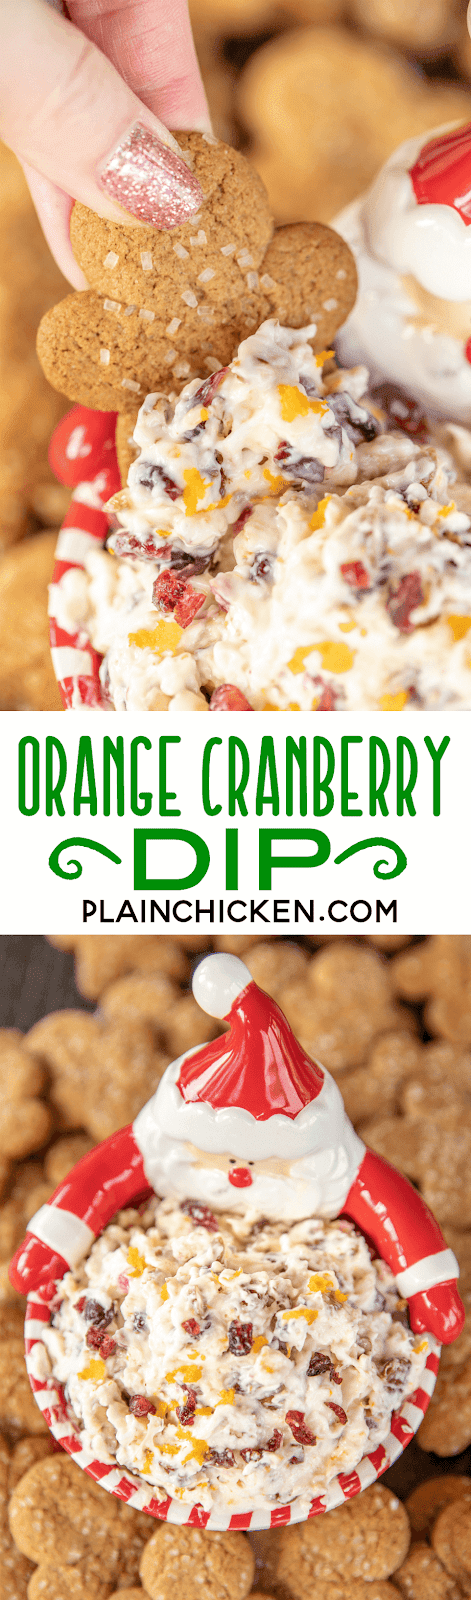 collage of 2 photos of cranberry dip